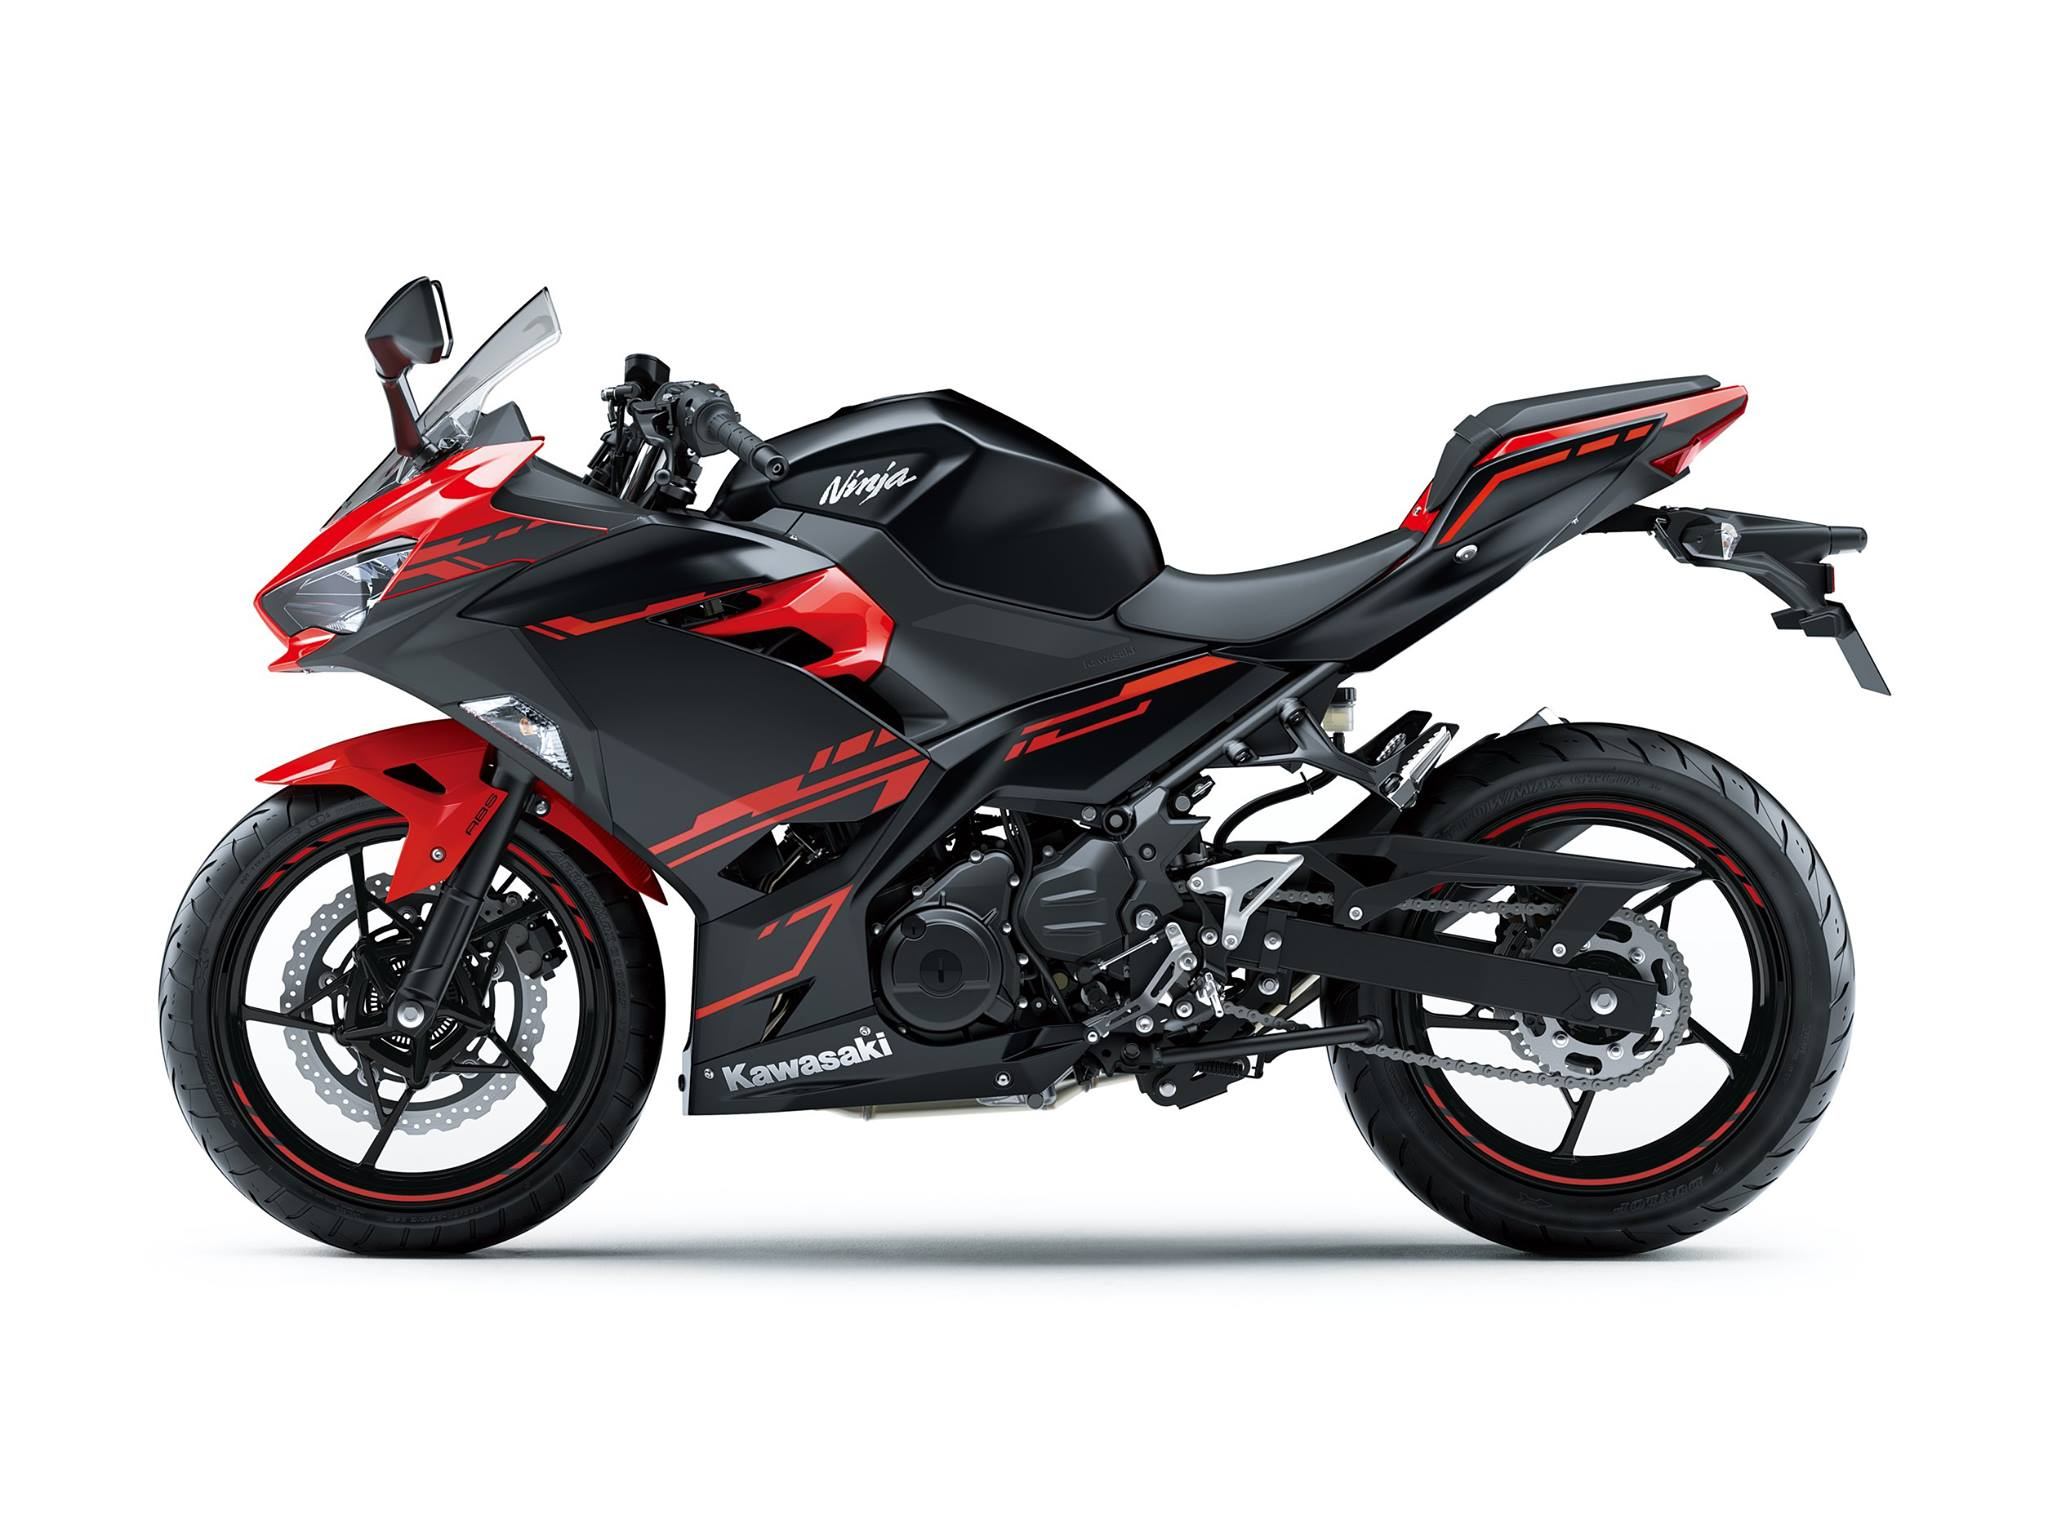 All New Kawasaki Ninja 250 FI Versi 2018 Warna Hitam Merah p7